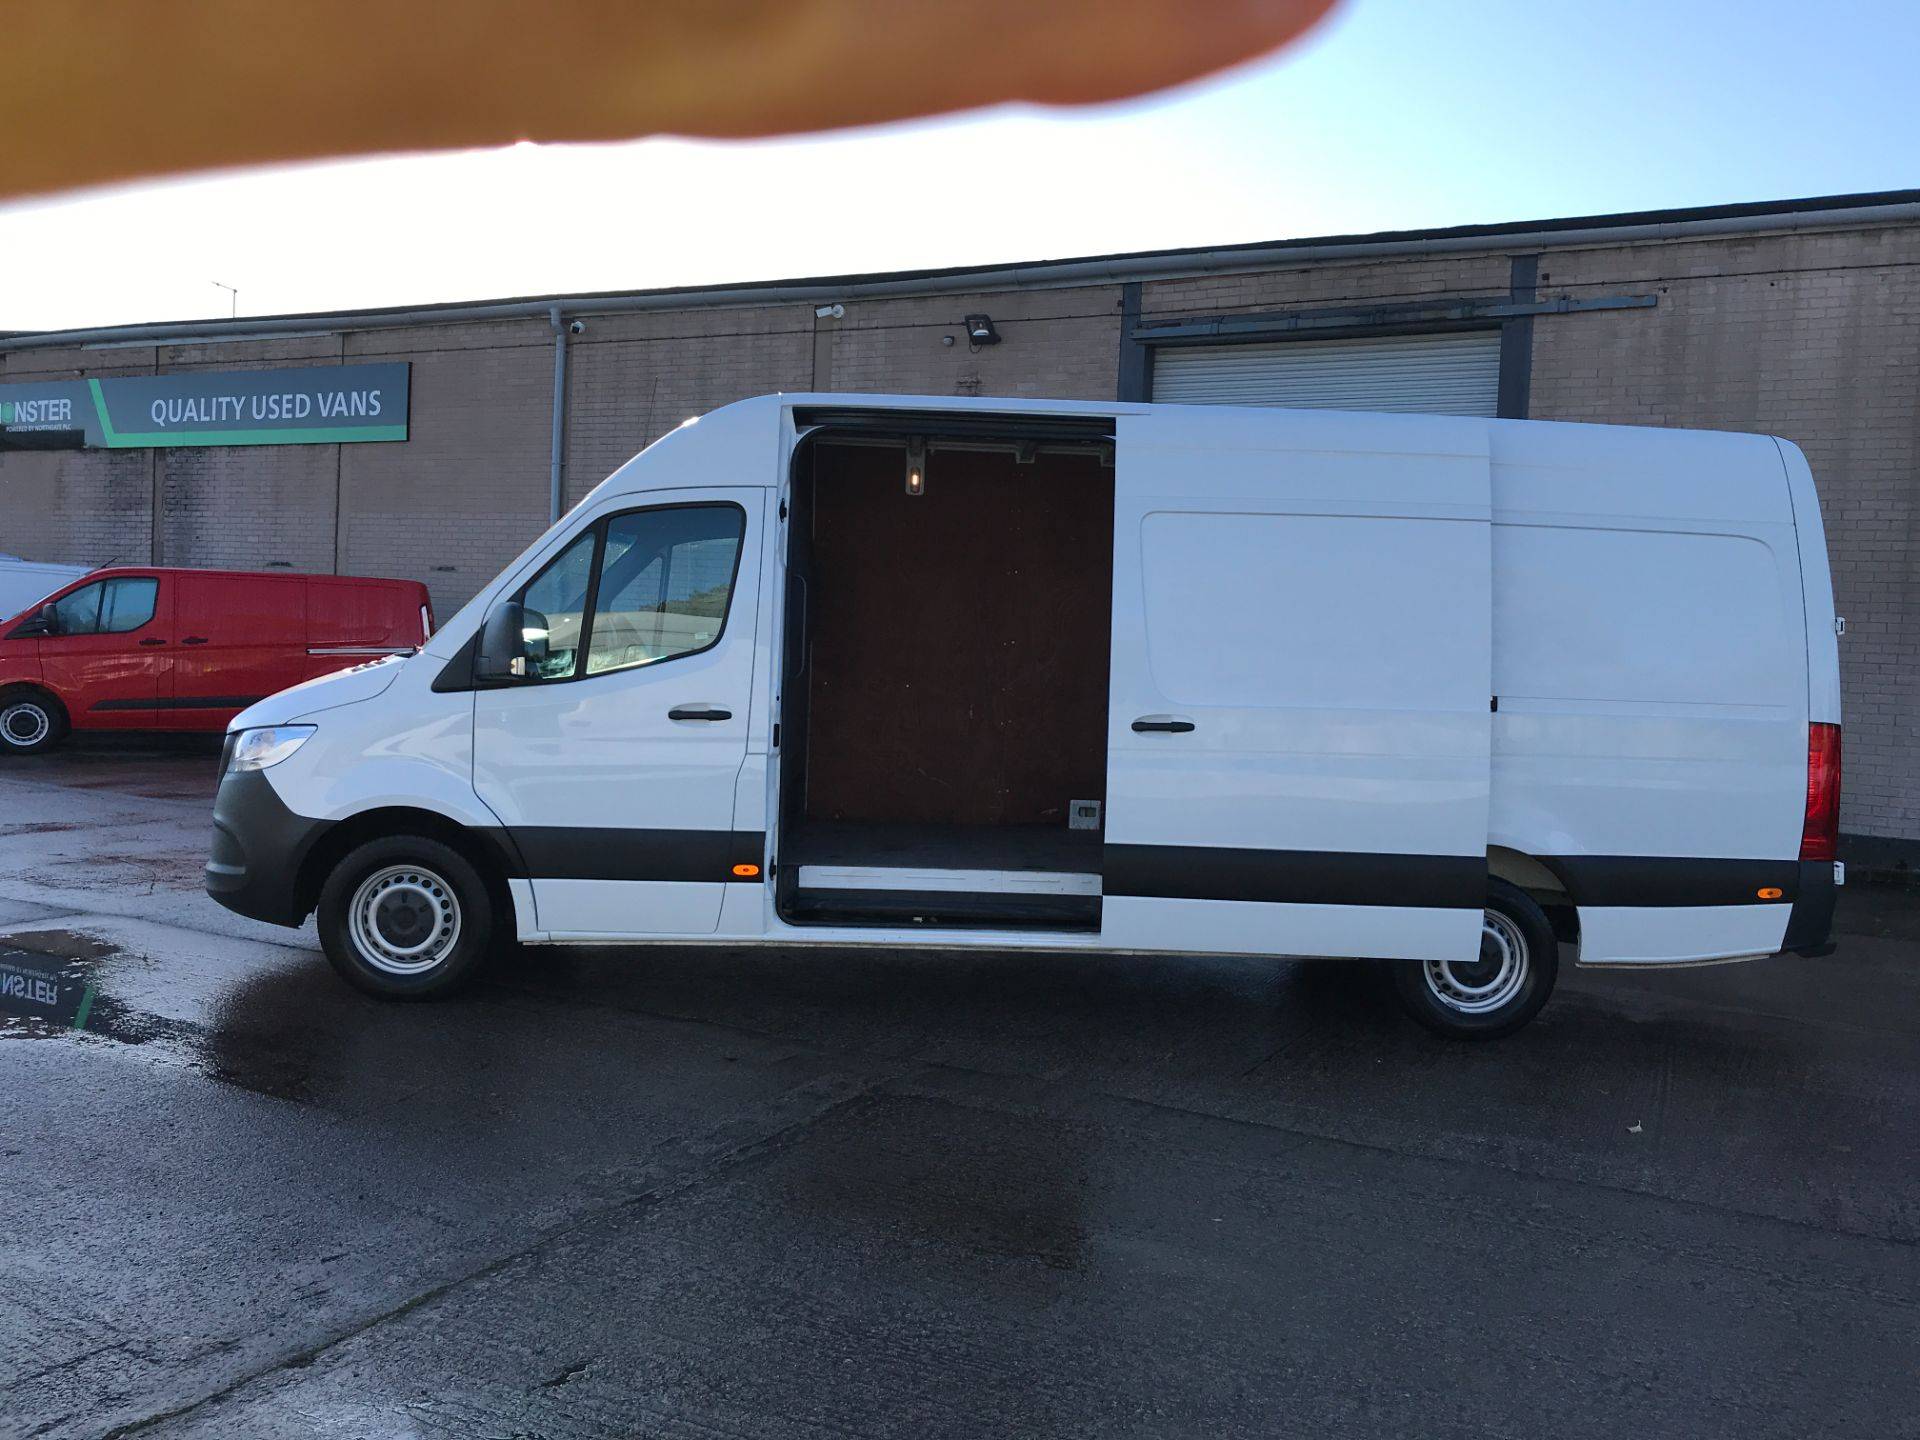 2018 Mercedes-Benz Sprinter 314CDI L3 H2 140PS EURO 6 (KJ18HPL) Thumbnail 19